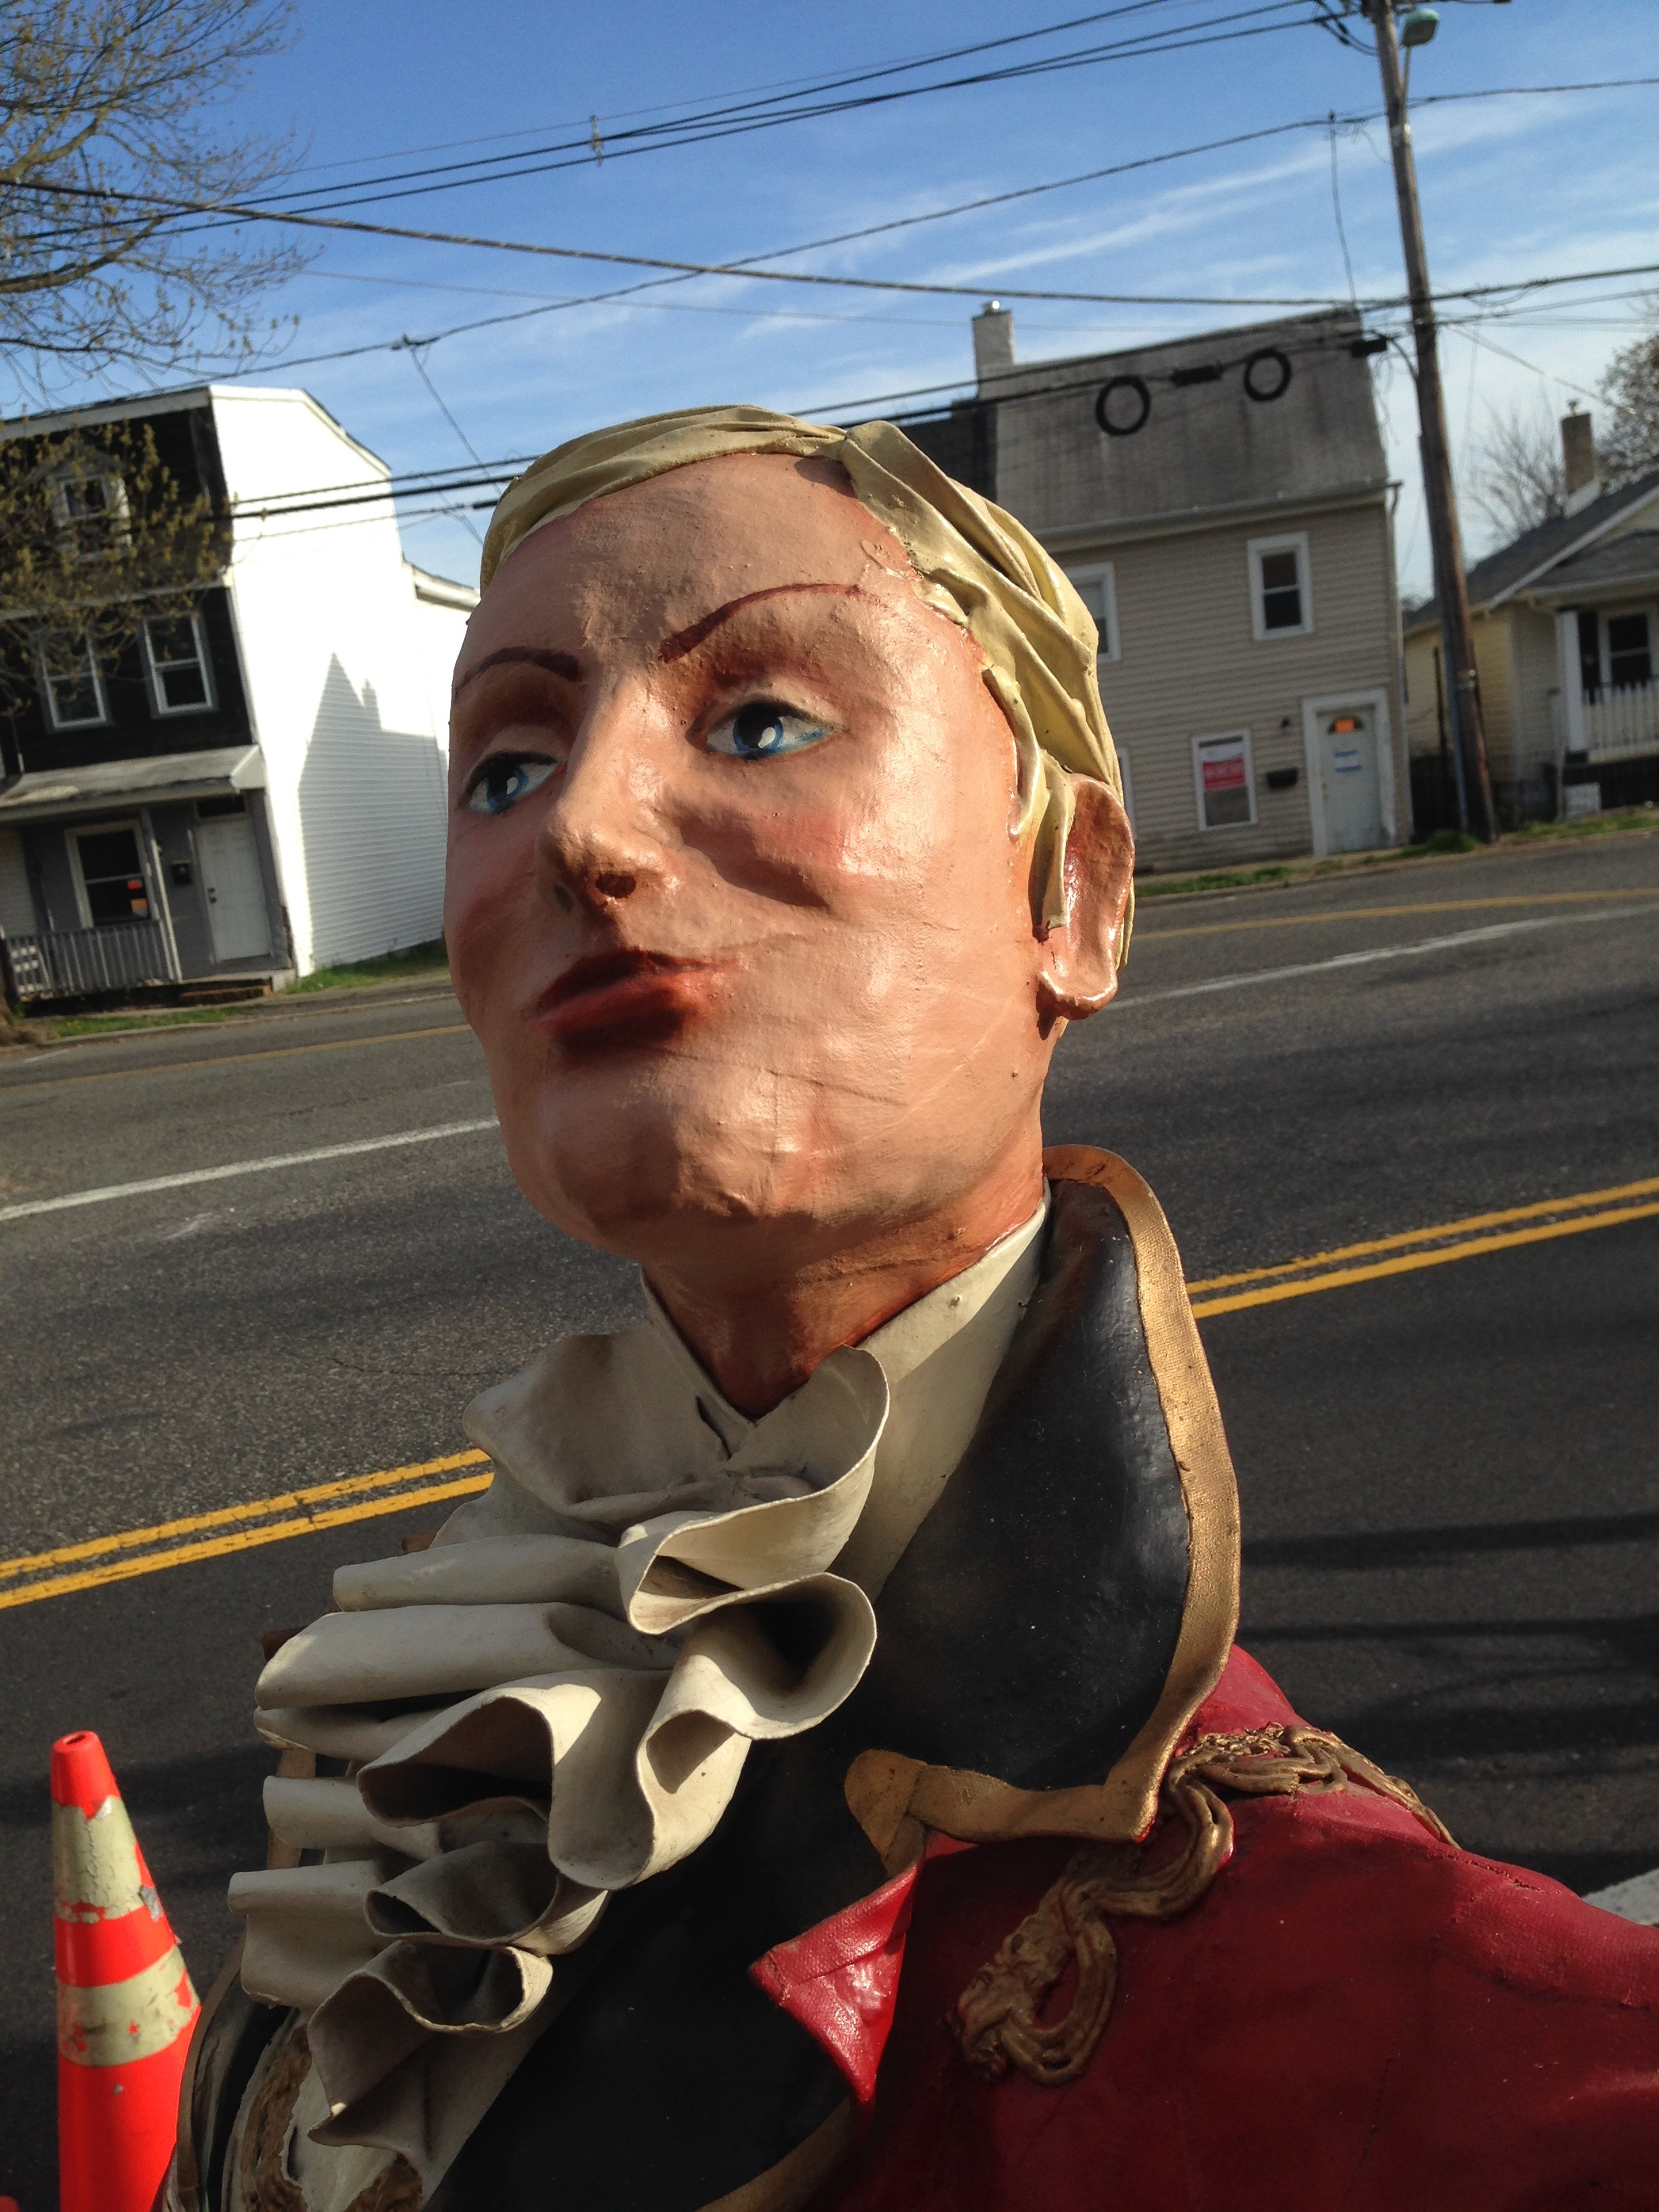 What Kind Of Oil >> Vintage Danbury Fair Ring Master Statue from The P.T ...